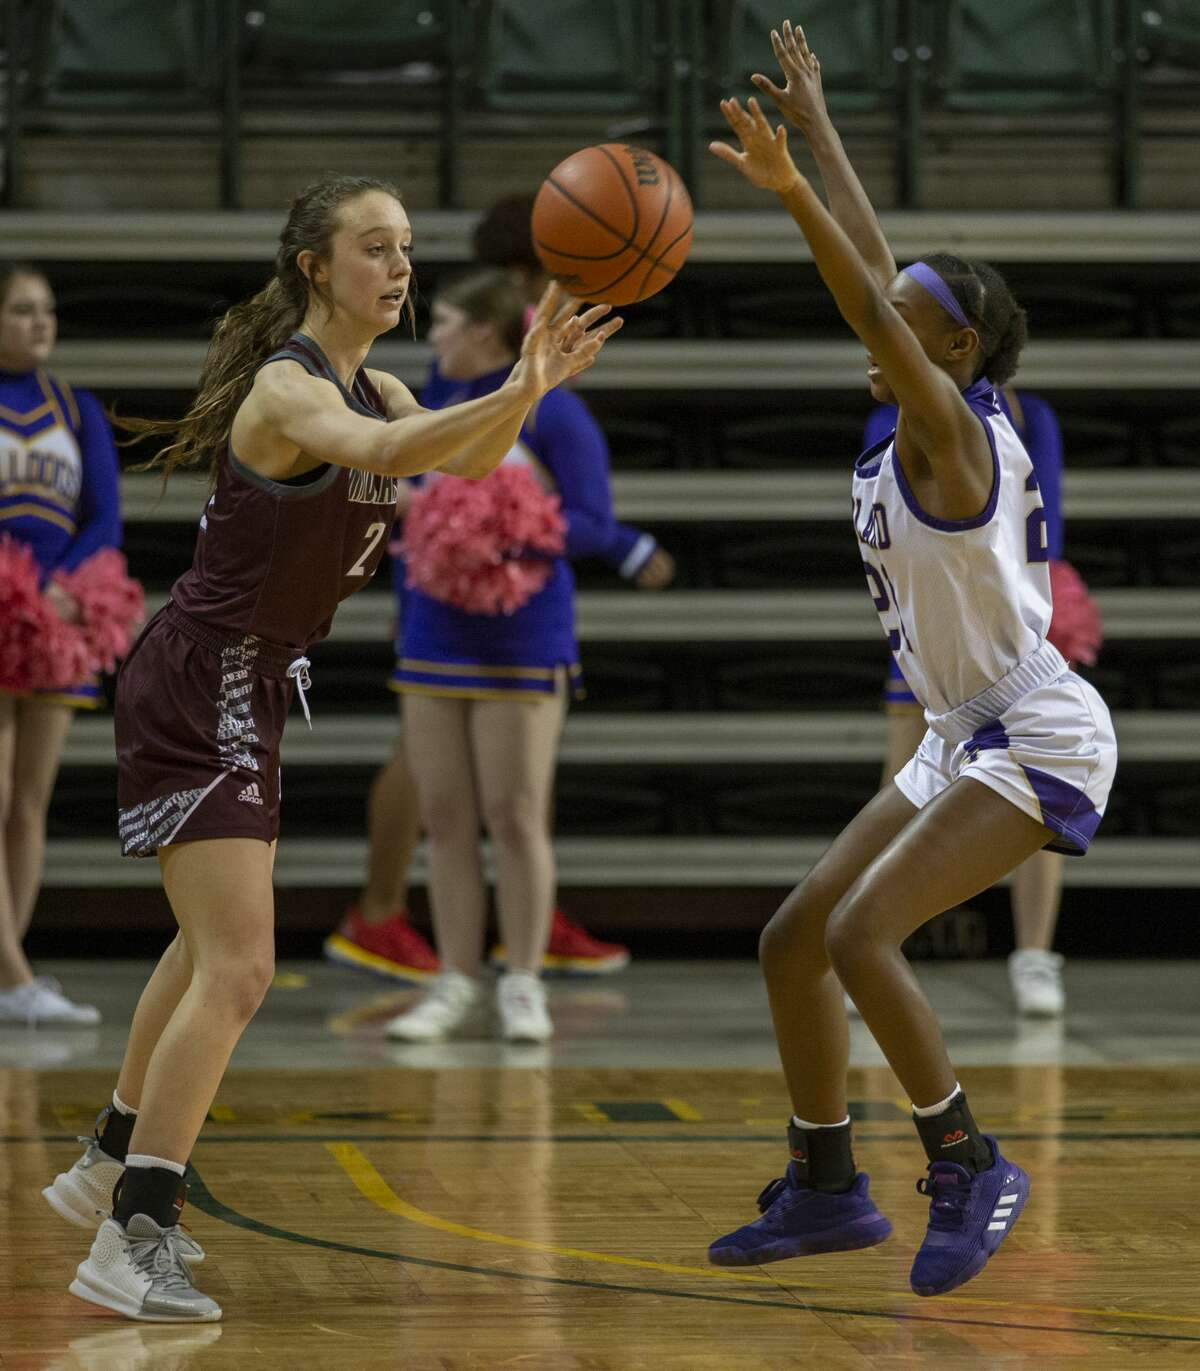 Lee's Maggie Erdwurm passes the ball as Midland High's Ahmaria Tennon guards her Tuesday, Feb. 4, 2020 at Chaparral Center.